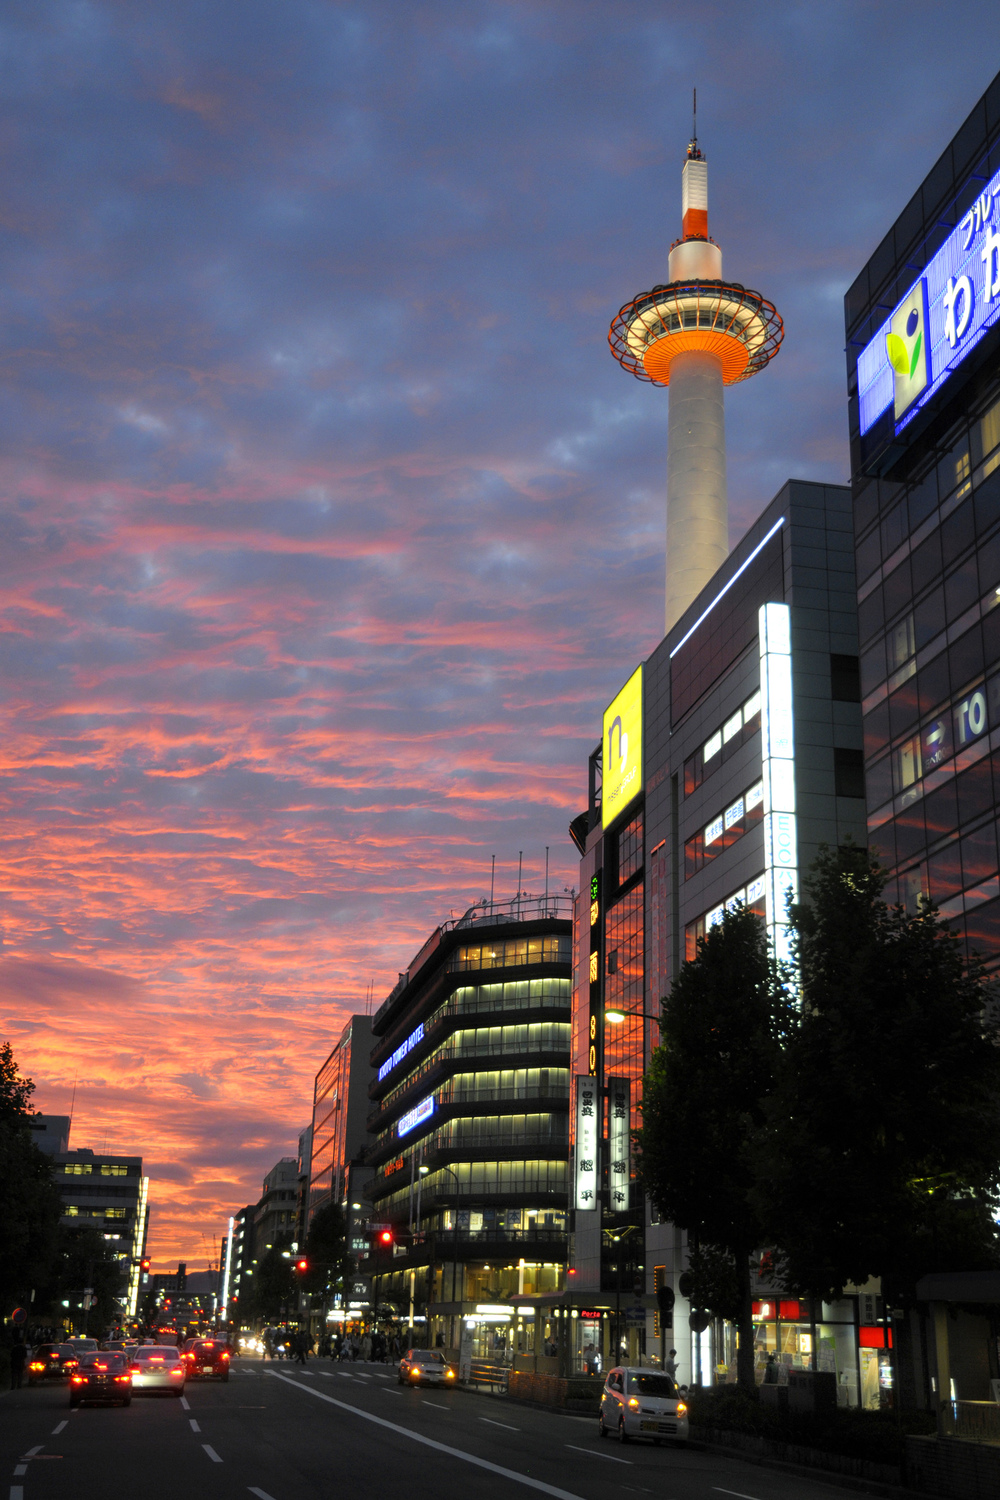 Sunset with the Kyoto Tower